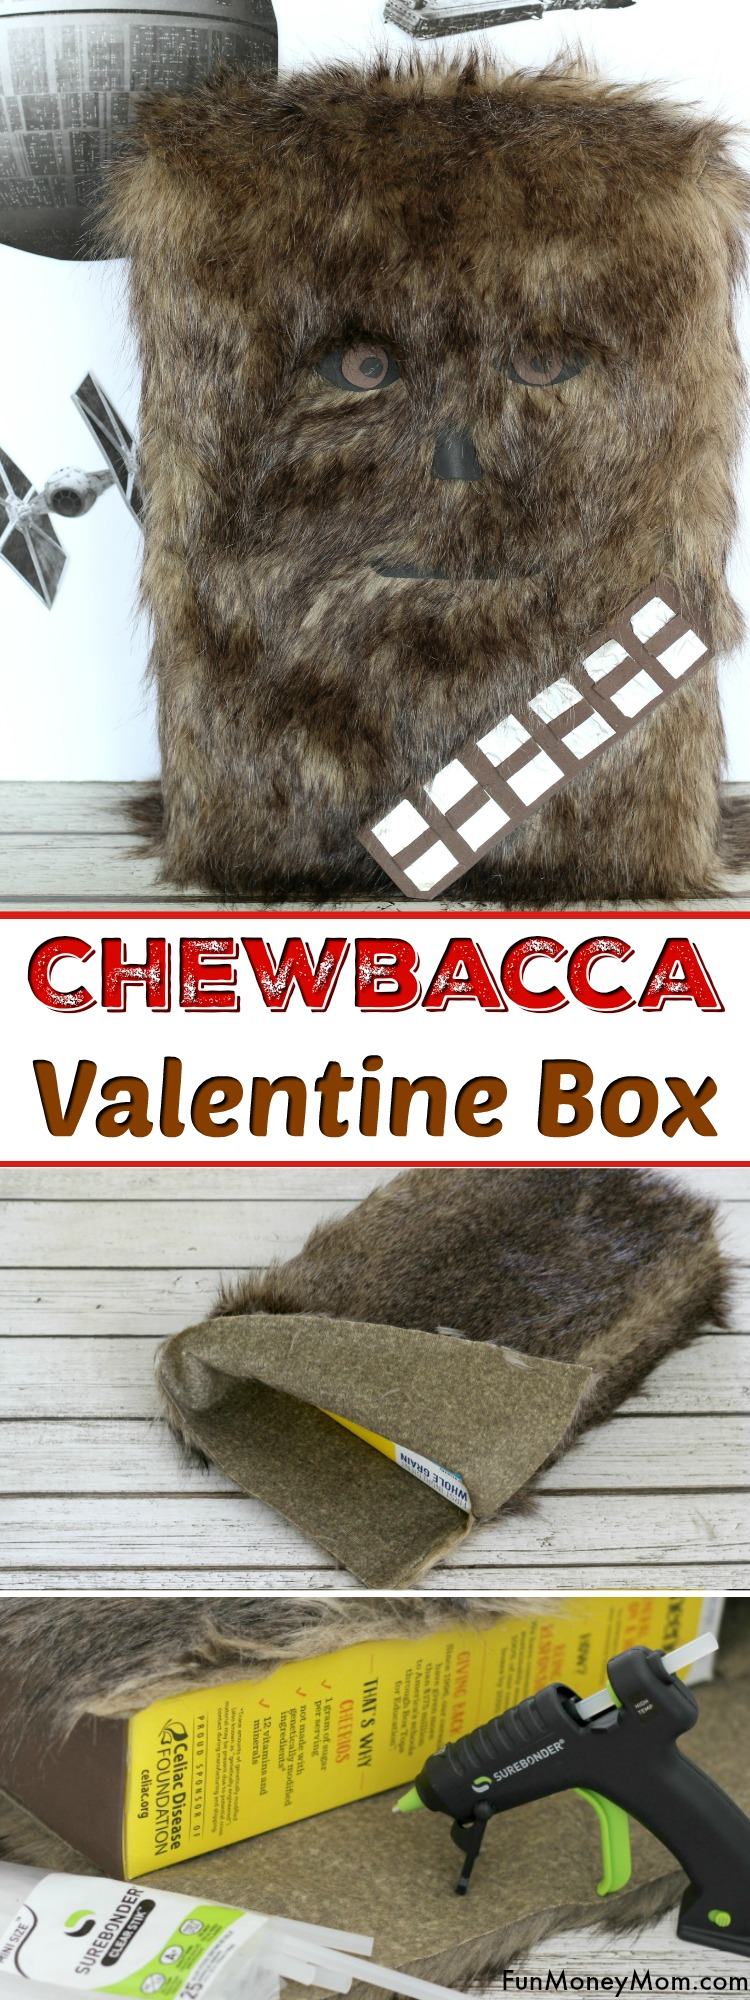 Chewbacca Valentine Box - This Star Wars Valentine Box will be a hit for Valentine's Day. What Star Wars fan wouldn't want a Chewbacca Valentine Box for their school party. They'll have just as much fun making this Valentine craft too! #ValentineBox #Valentinecraft #StarWarsValentineBox #Chewbacca